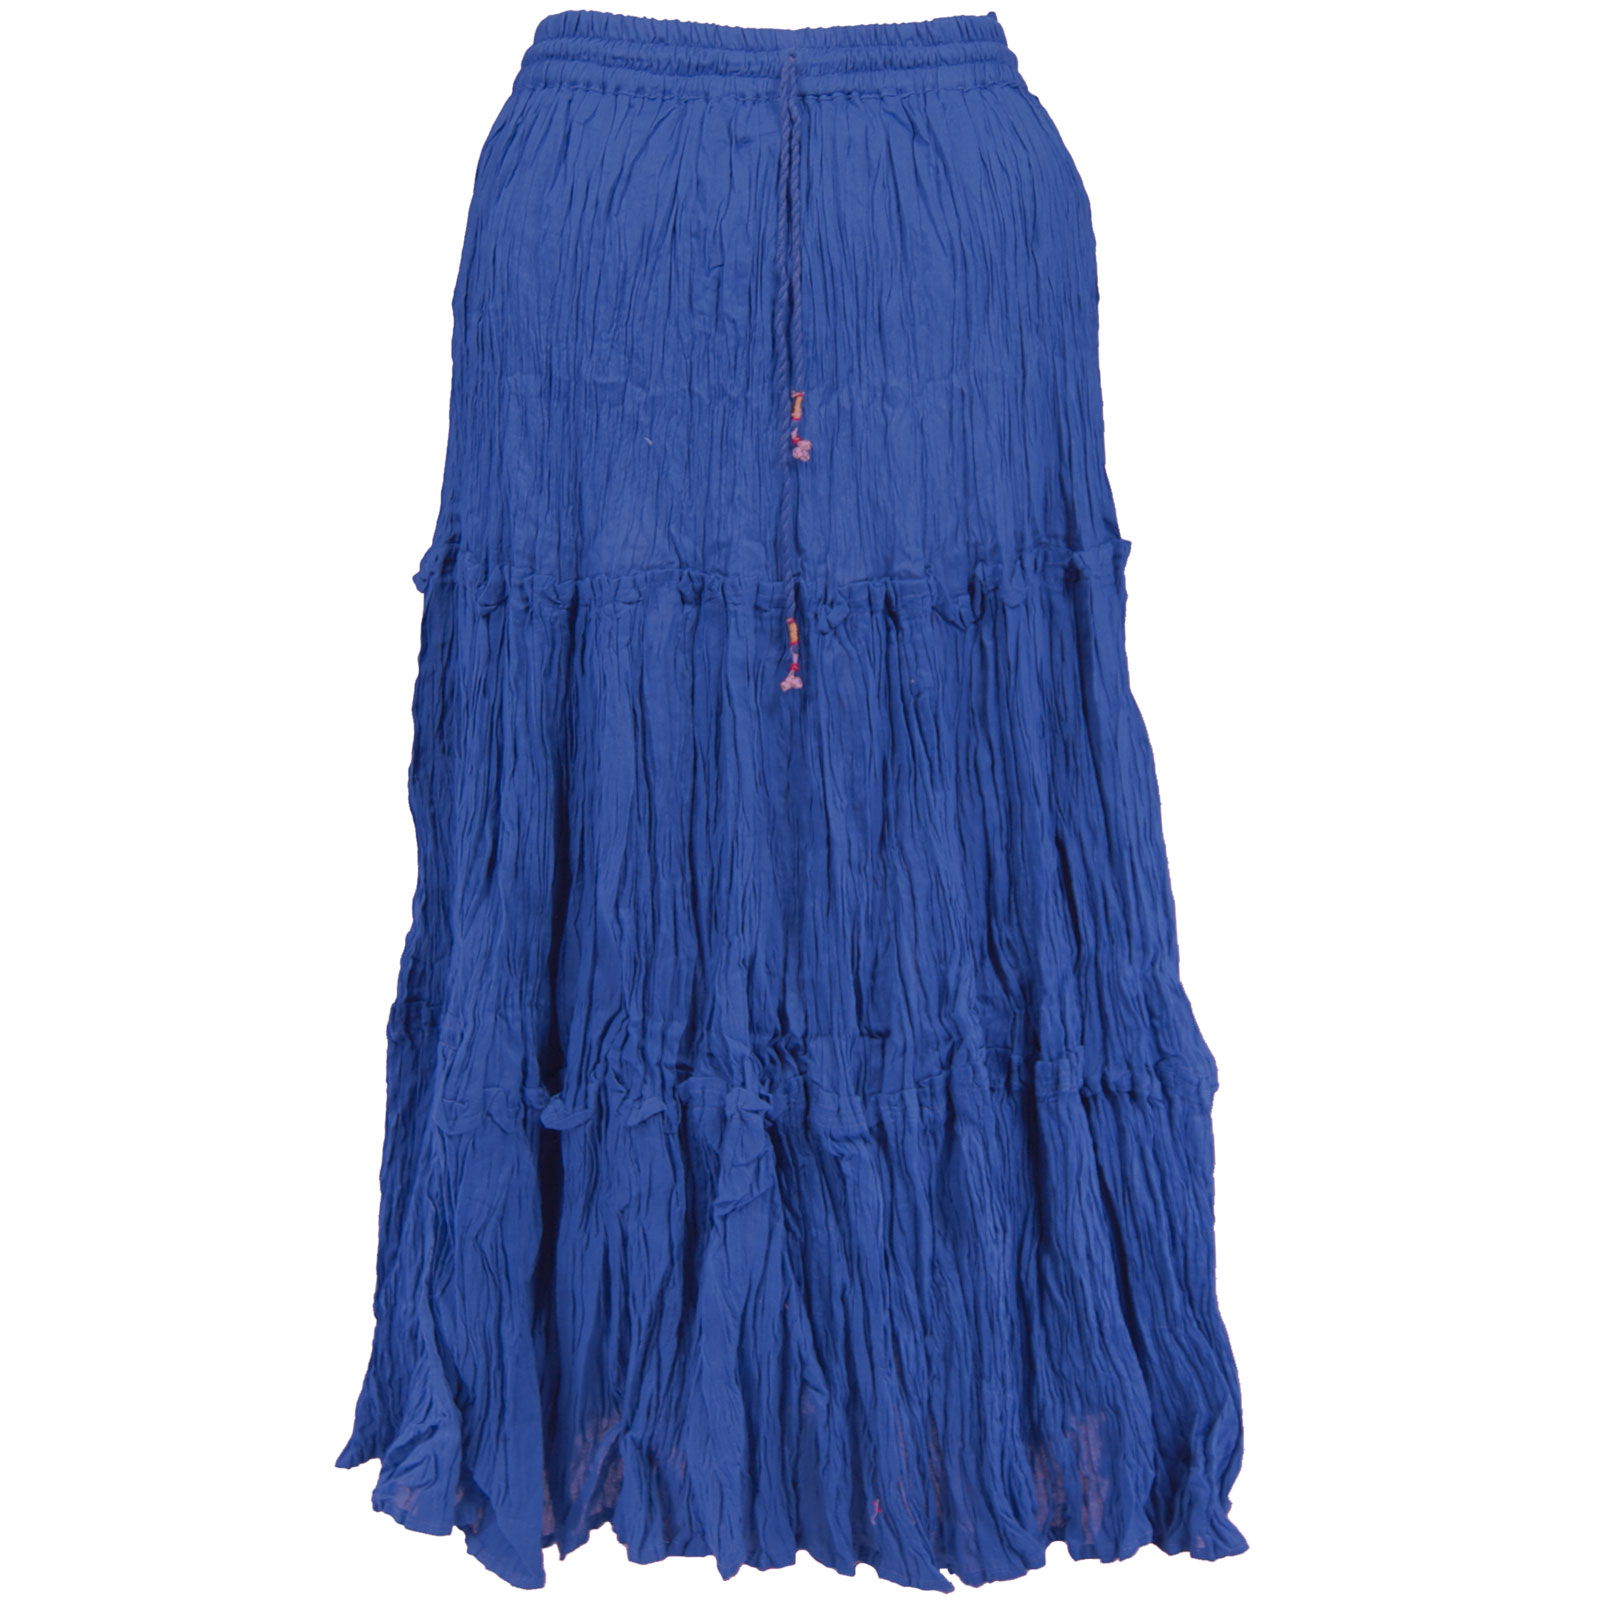 Wholesale Skirts - Long Cotton Broomstick with Pocket 503 Ankle Length - Royal - One Size (S-XL)